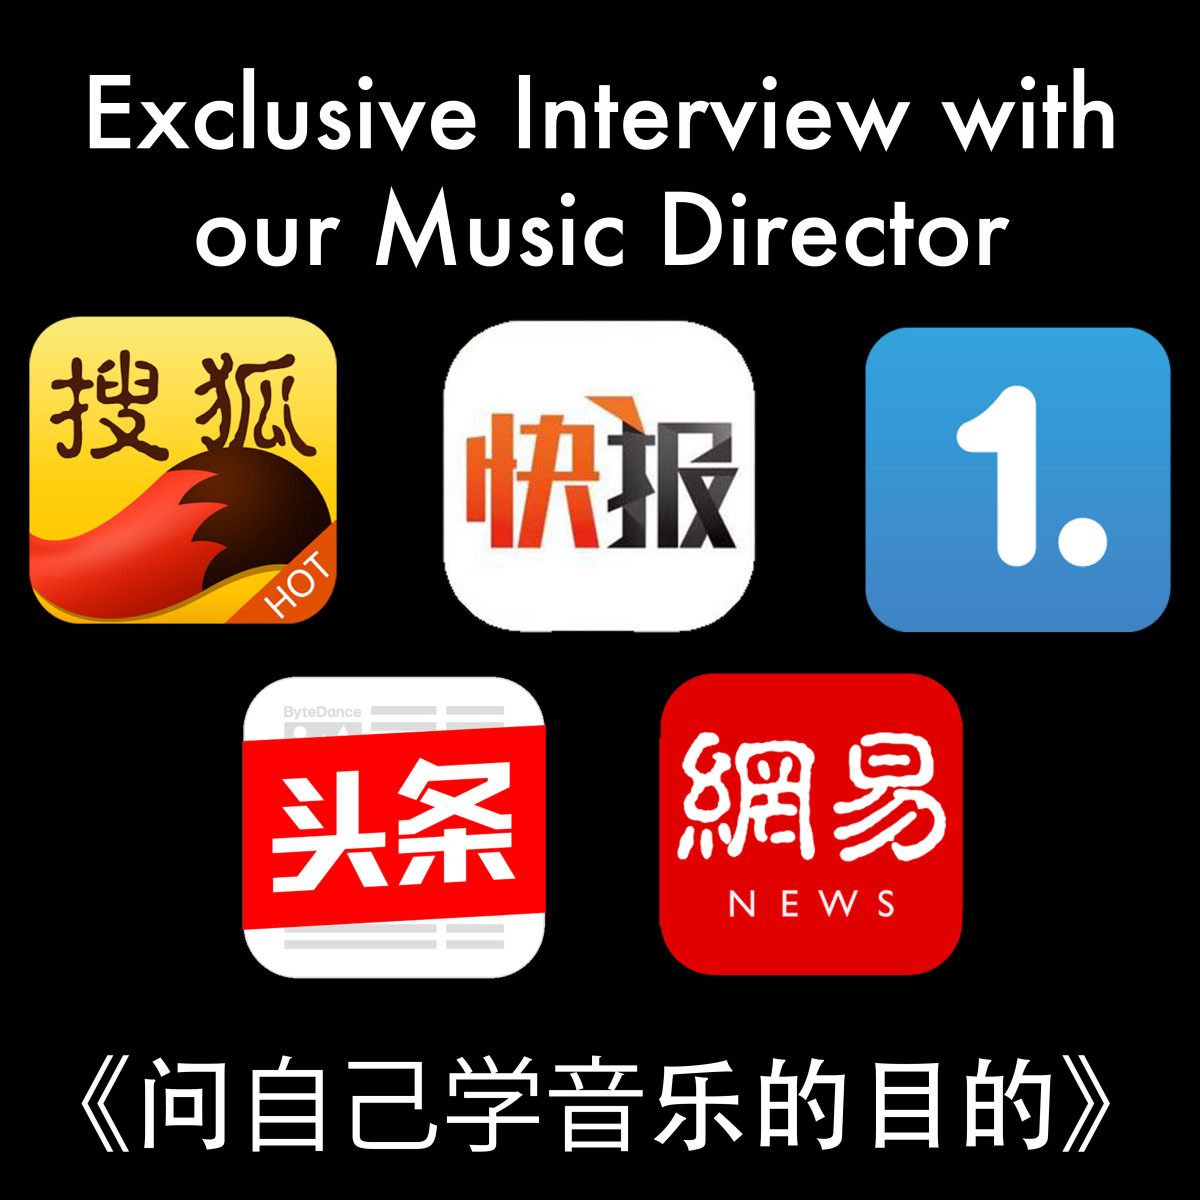 Exclusive Interview with our Music Director